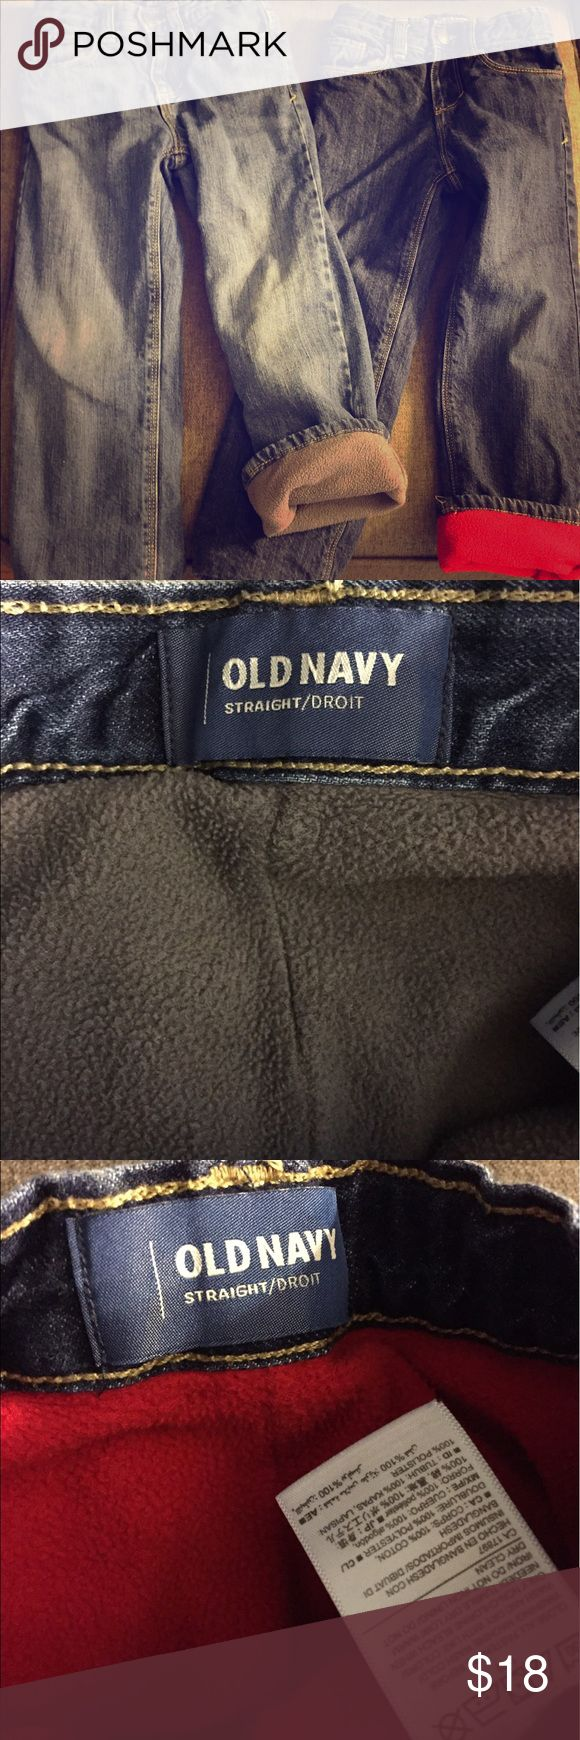 2 pair of old navy fleece lined jeans EUC! Very warm and super cute! Both pair included. Old Navy Bottoms Jeans